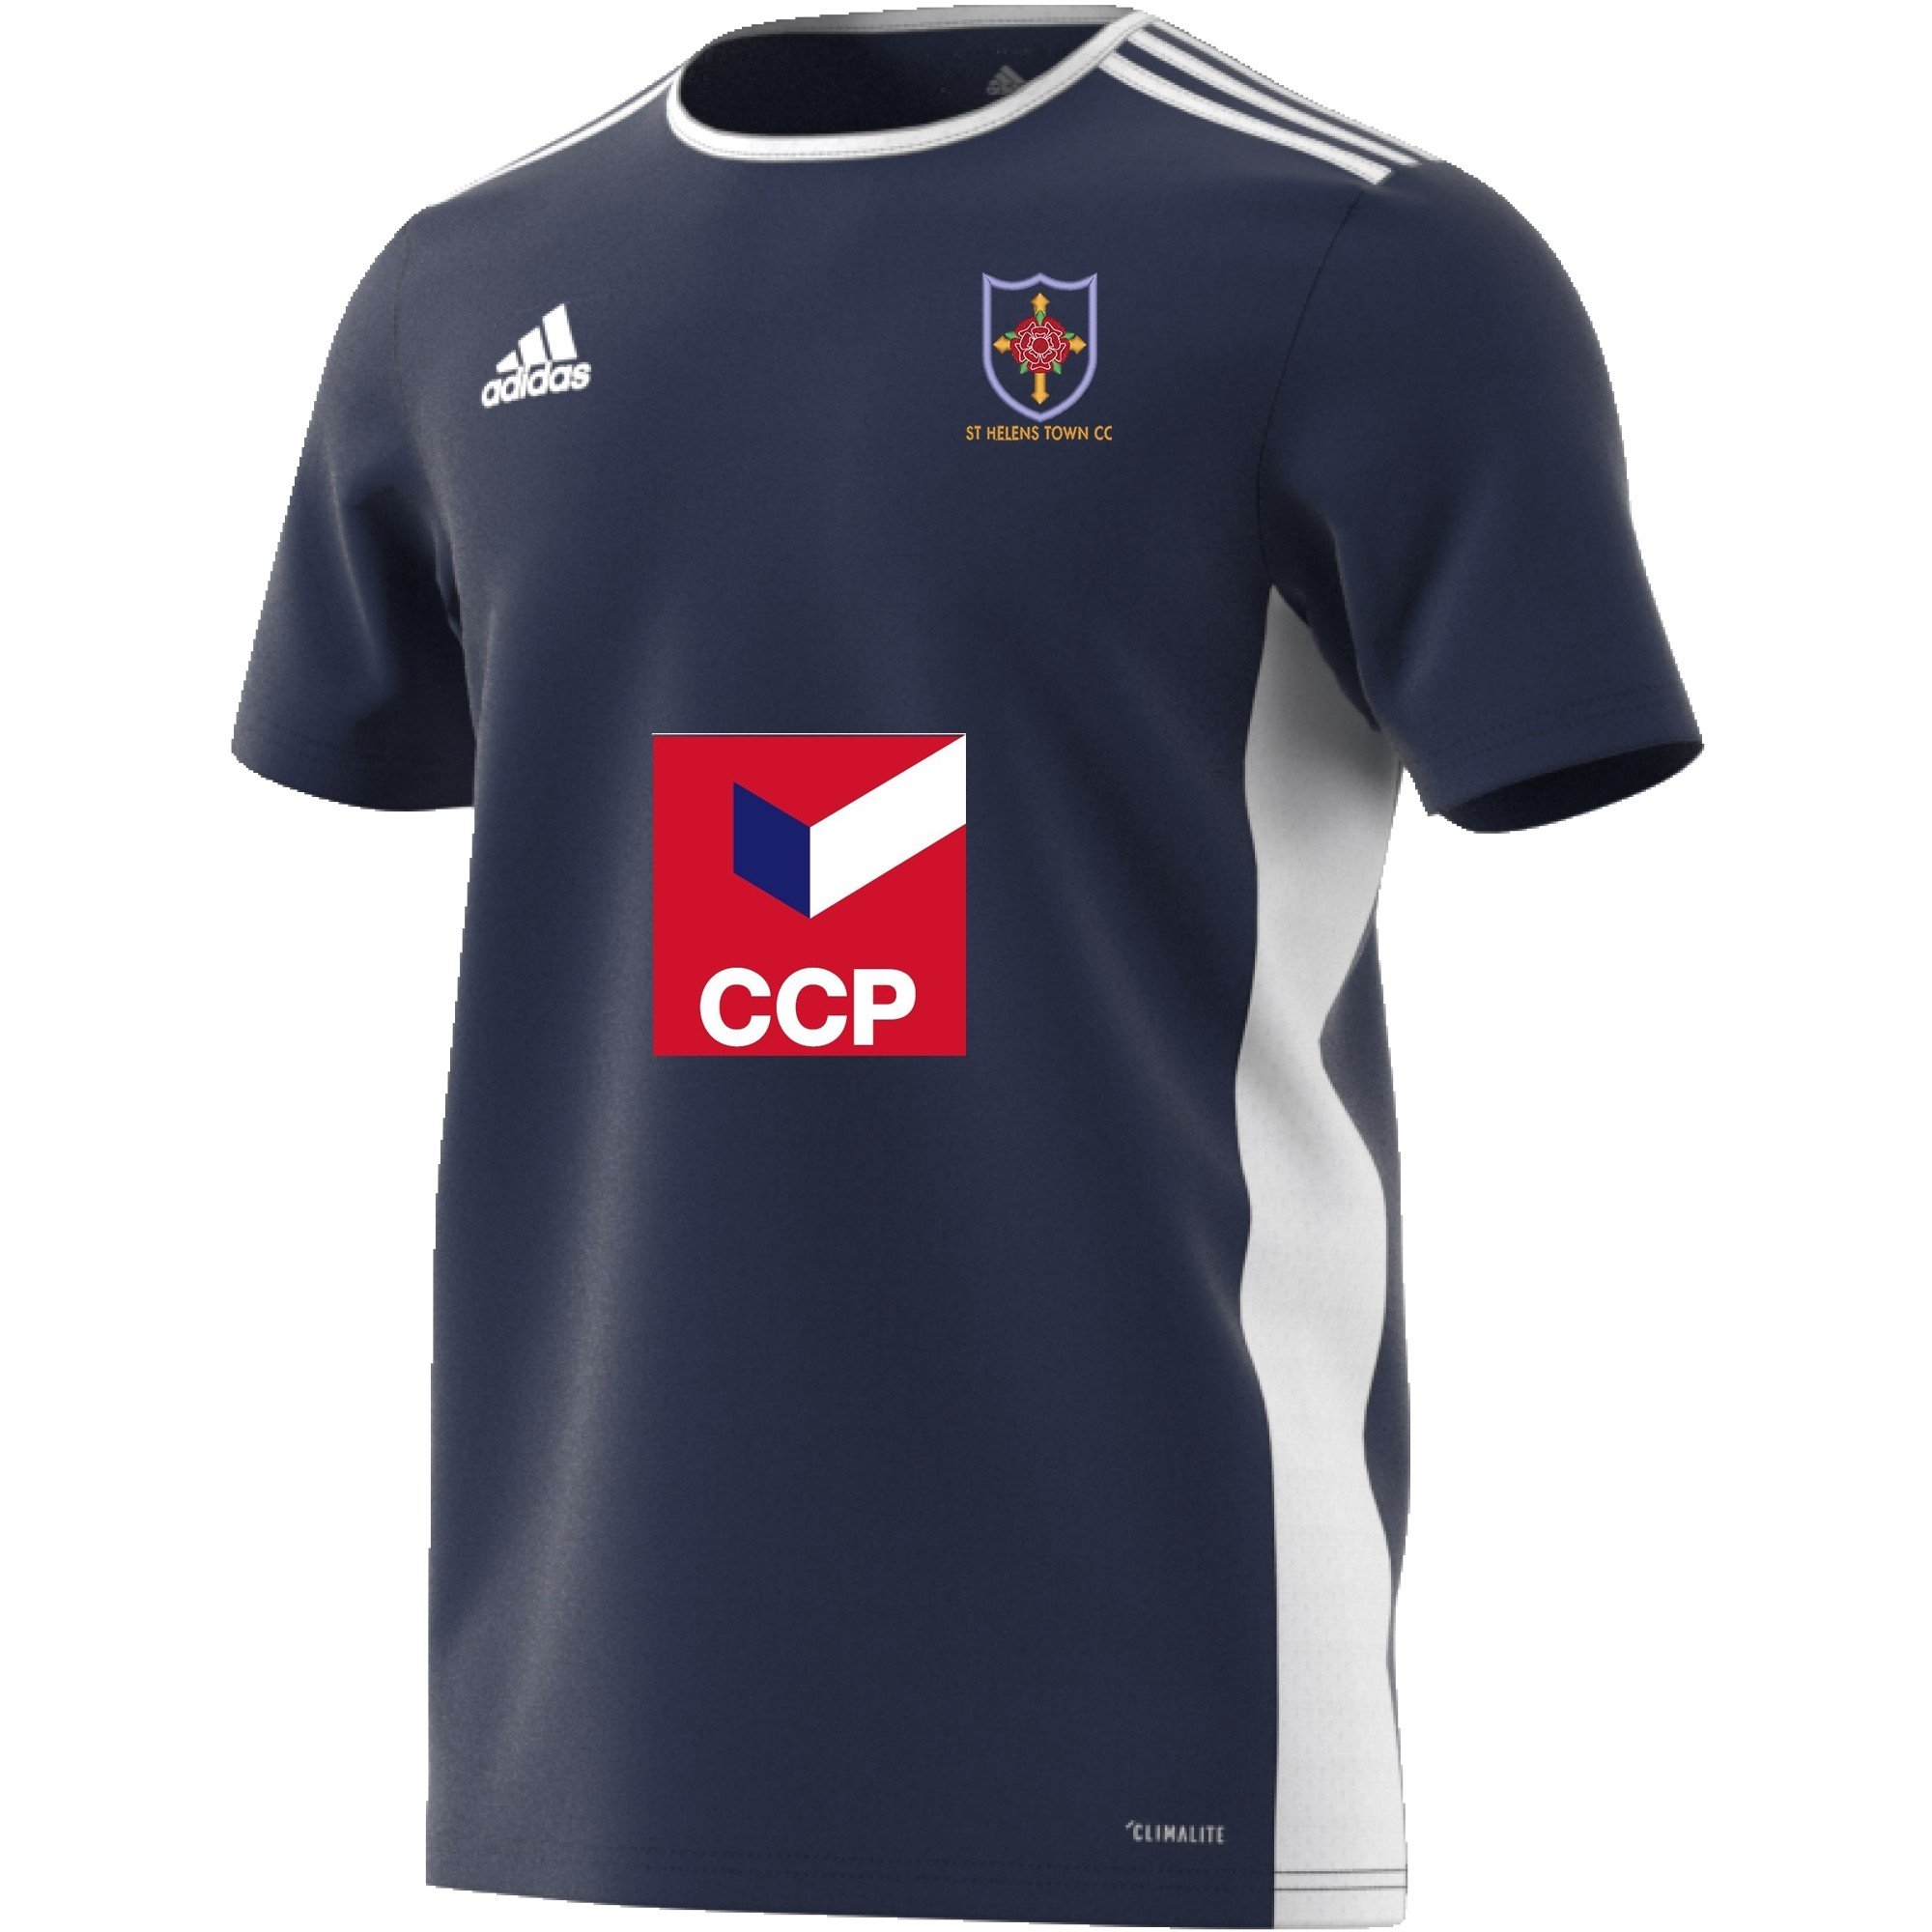 St Helens Town CC Adidas Navy Training Jersey